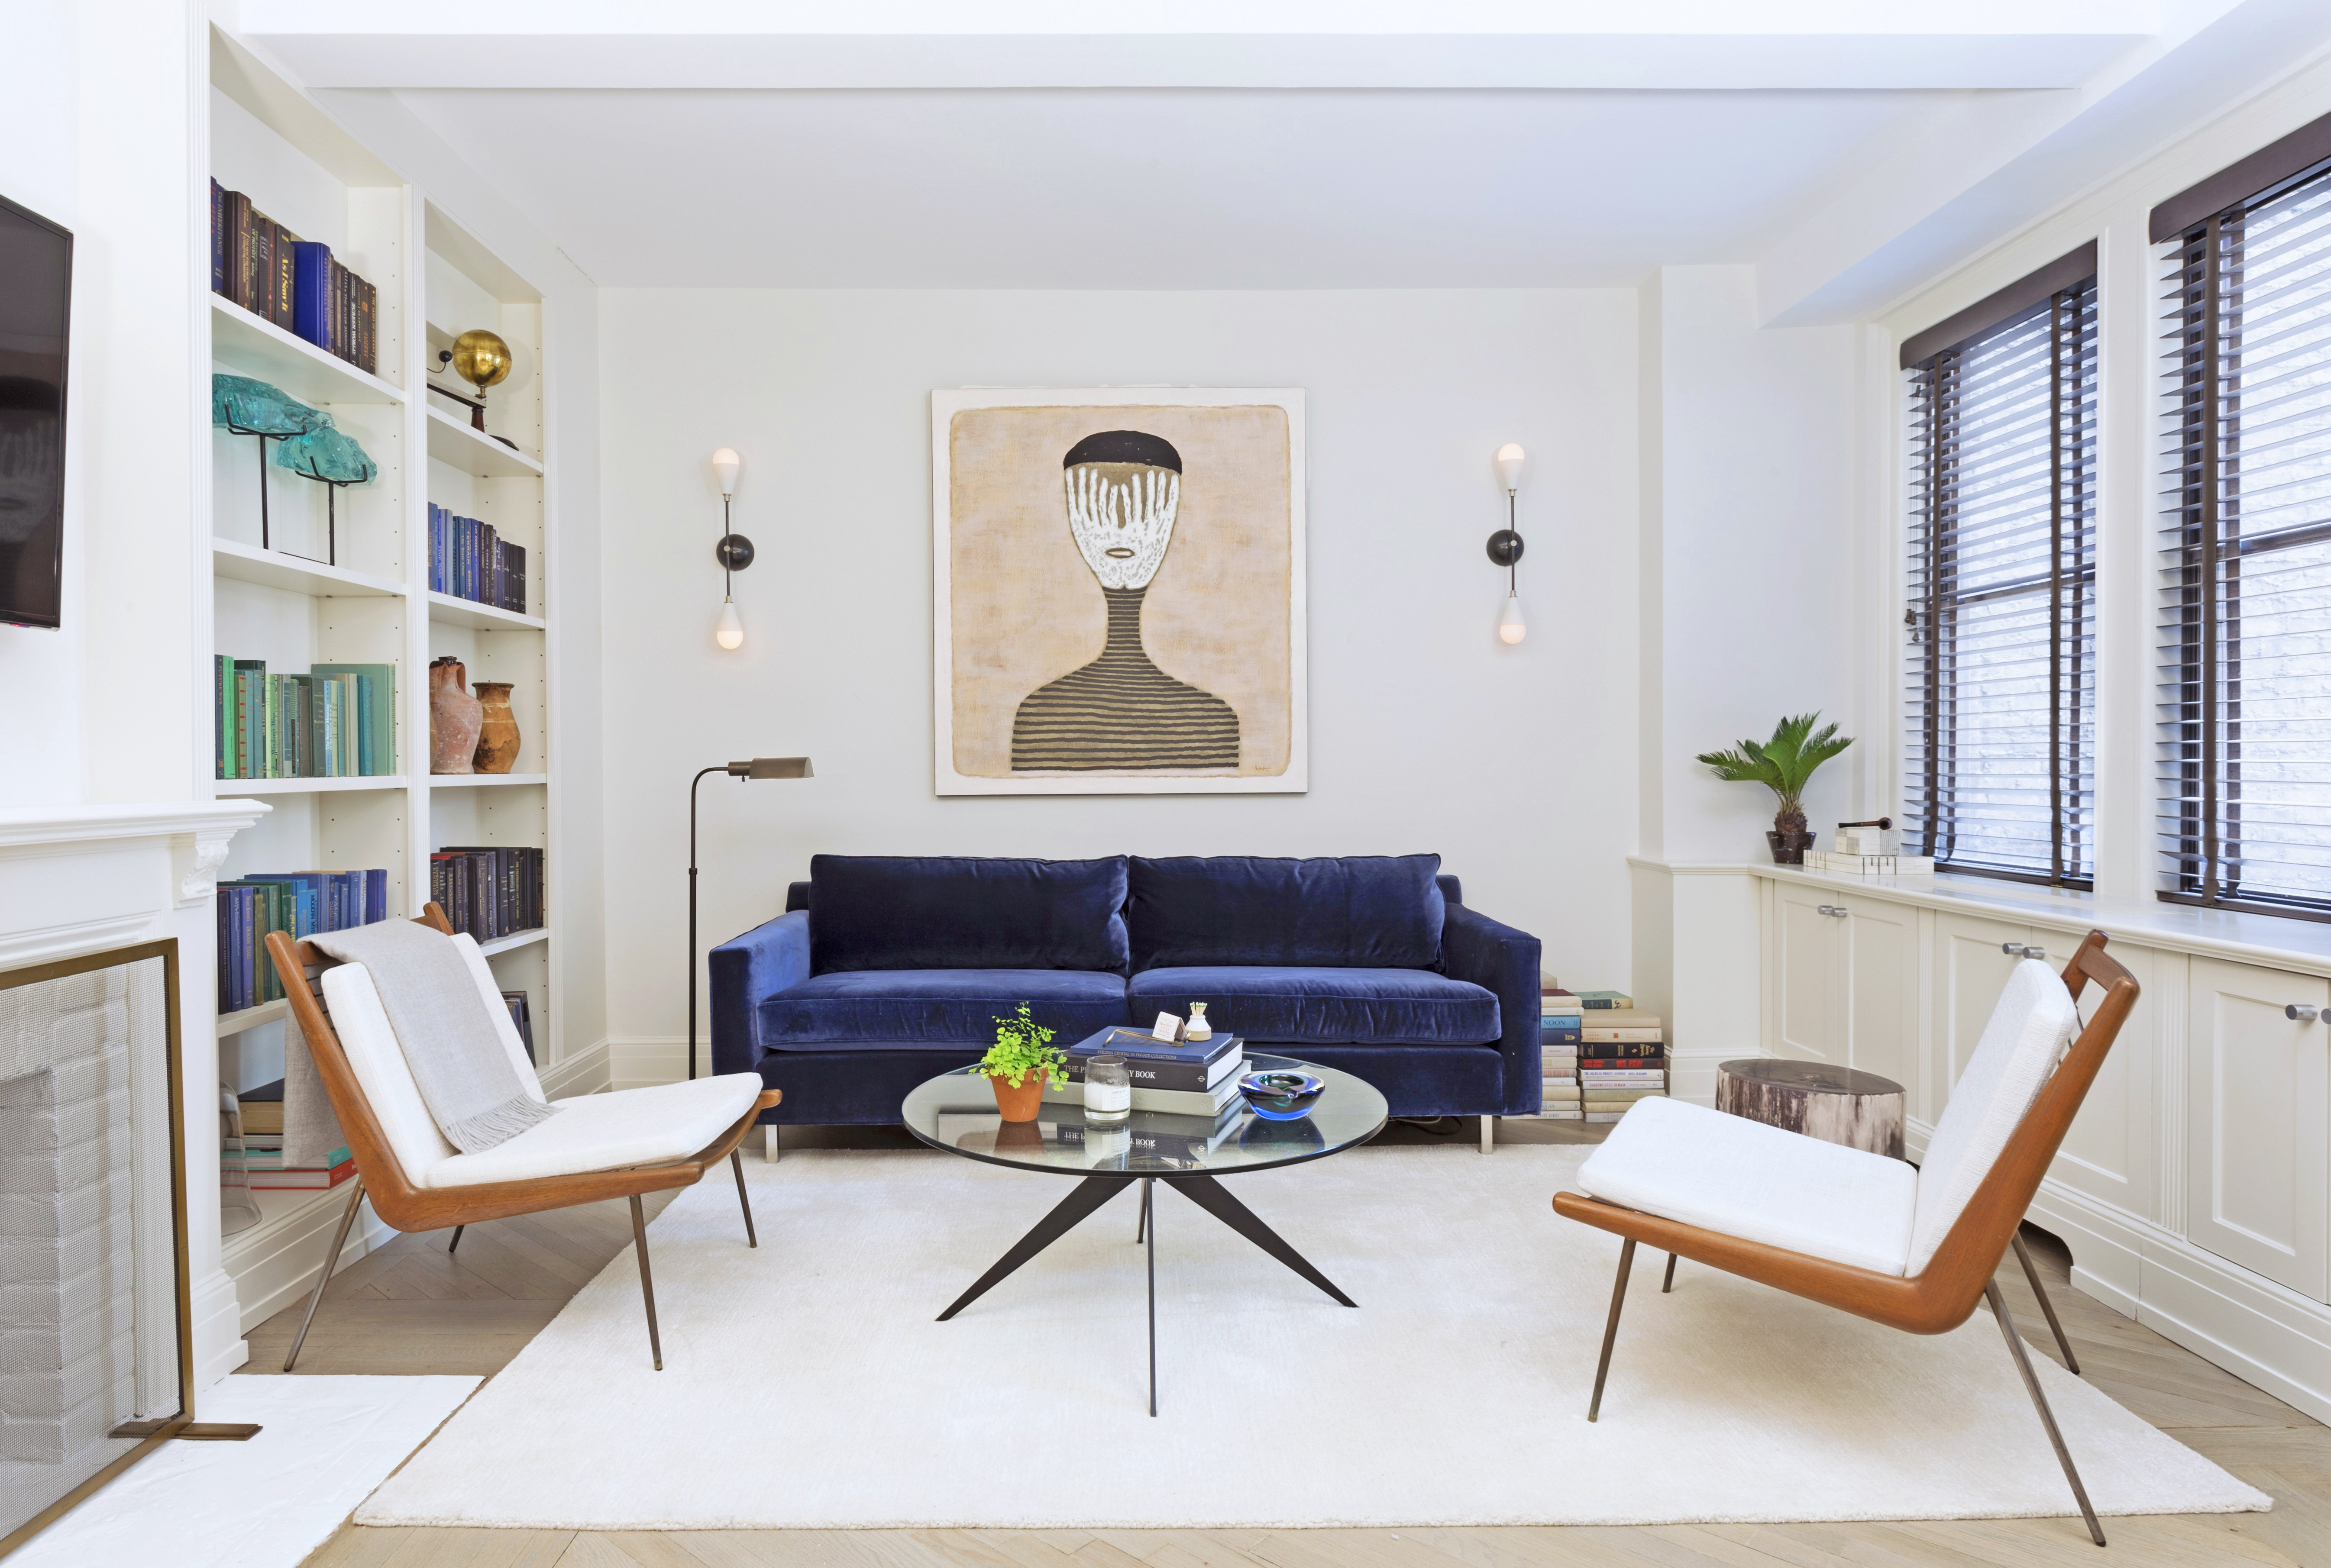 10 tips for decorating small spaces - architectural digest